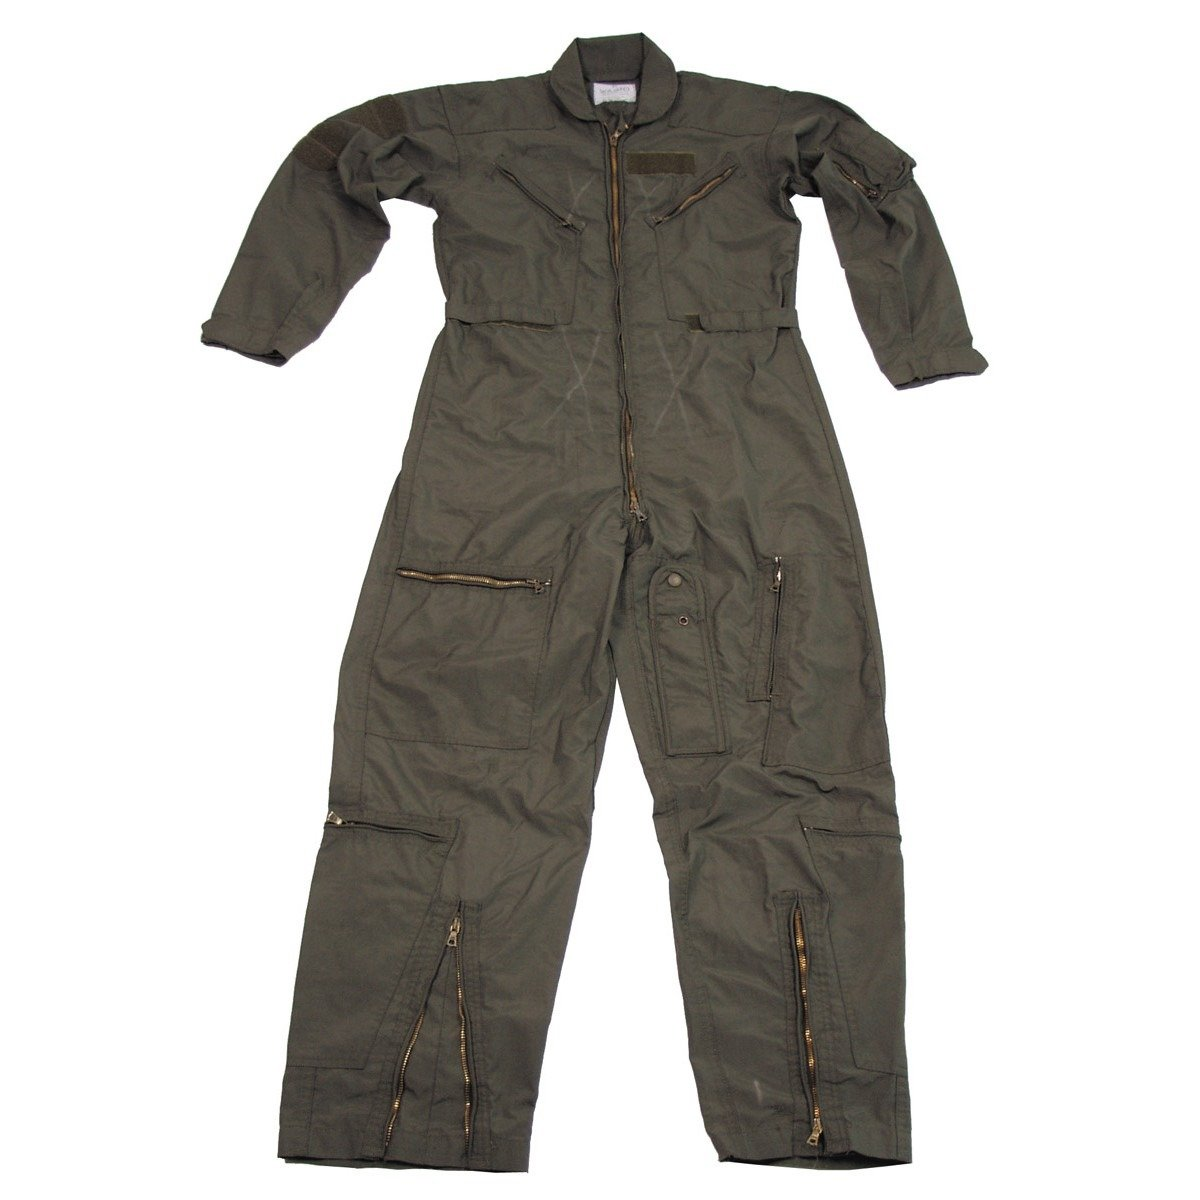 Decent Eng Pl Austr Bh Tank Coverall Od Green Used 20545 1 B H Used B H Used Camera dpreview Bh Used